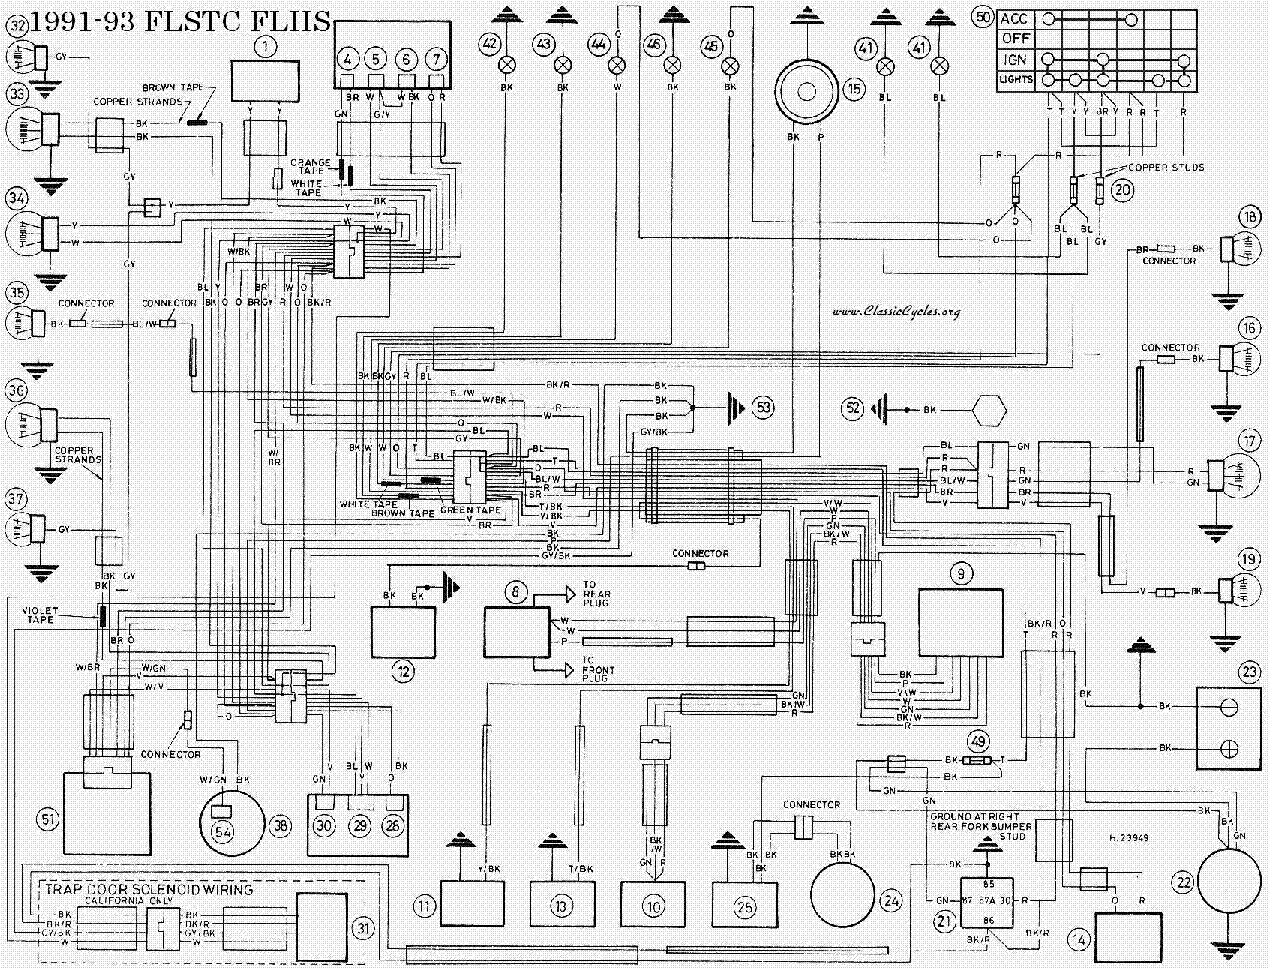 Harley Davidson Wiring Diagram Online Wla Download Electrical Diagrams Harness